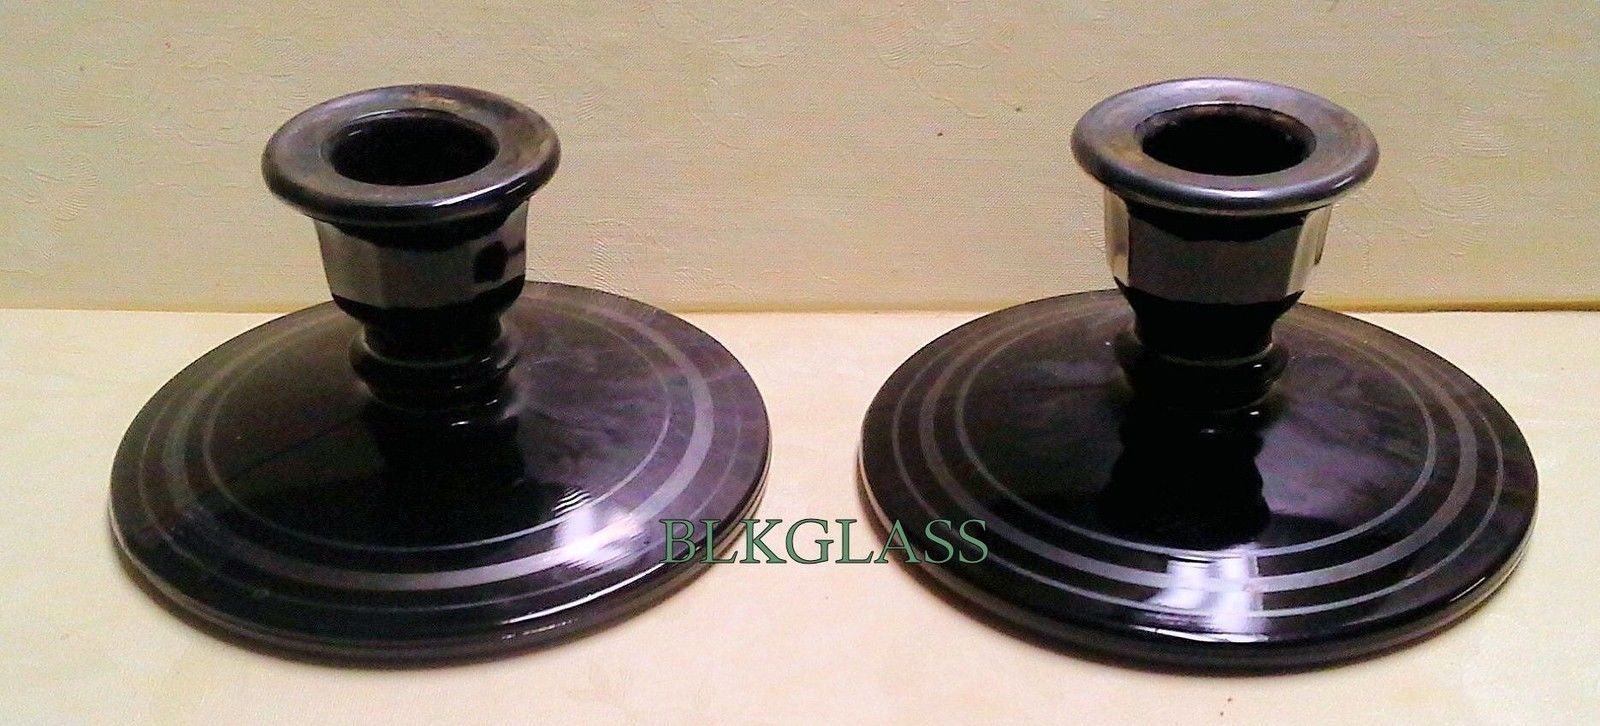 Black Glass Candleholders With 8 Sided Socket, Possibly Made By L. E. Smith - $24.99